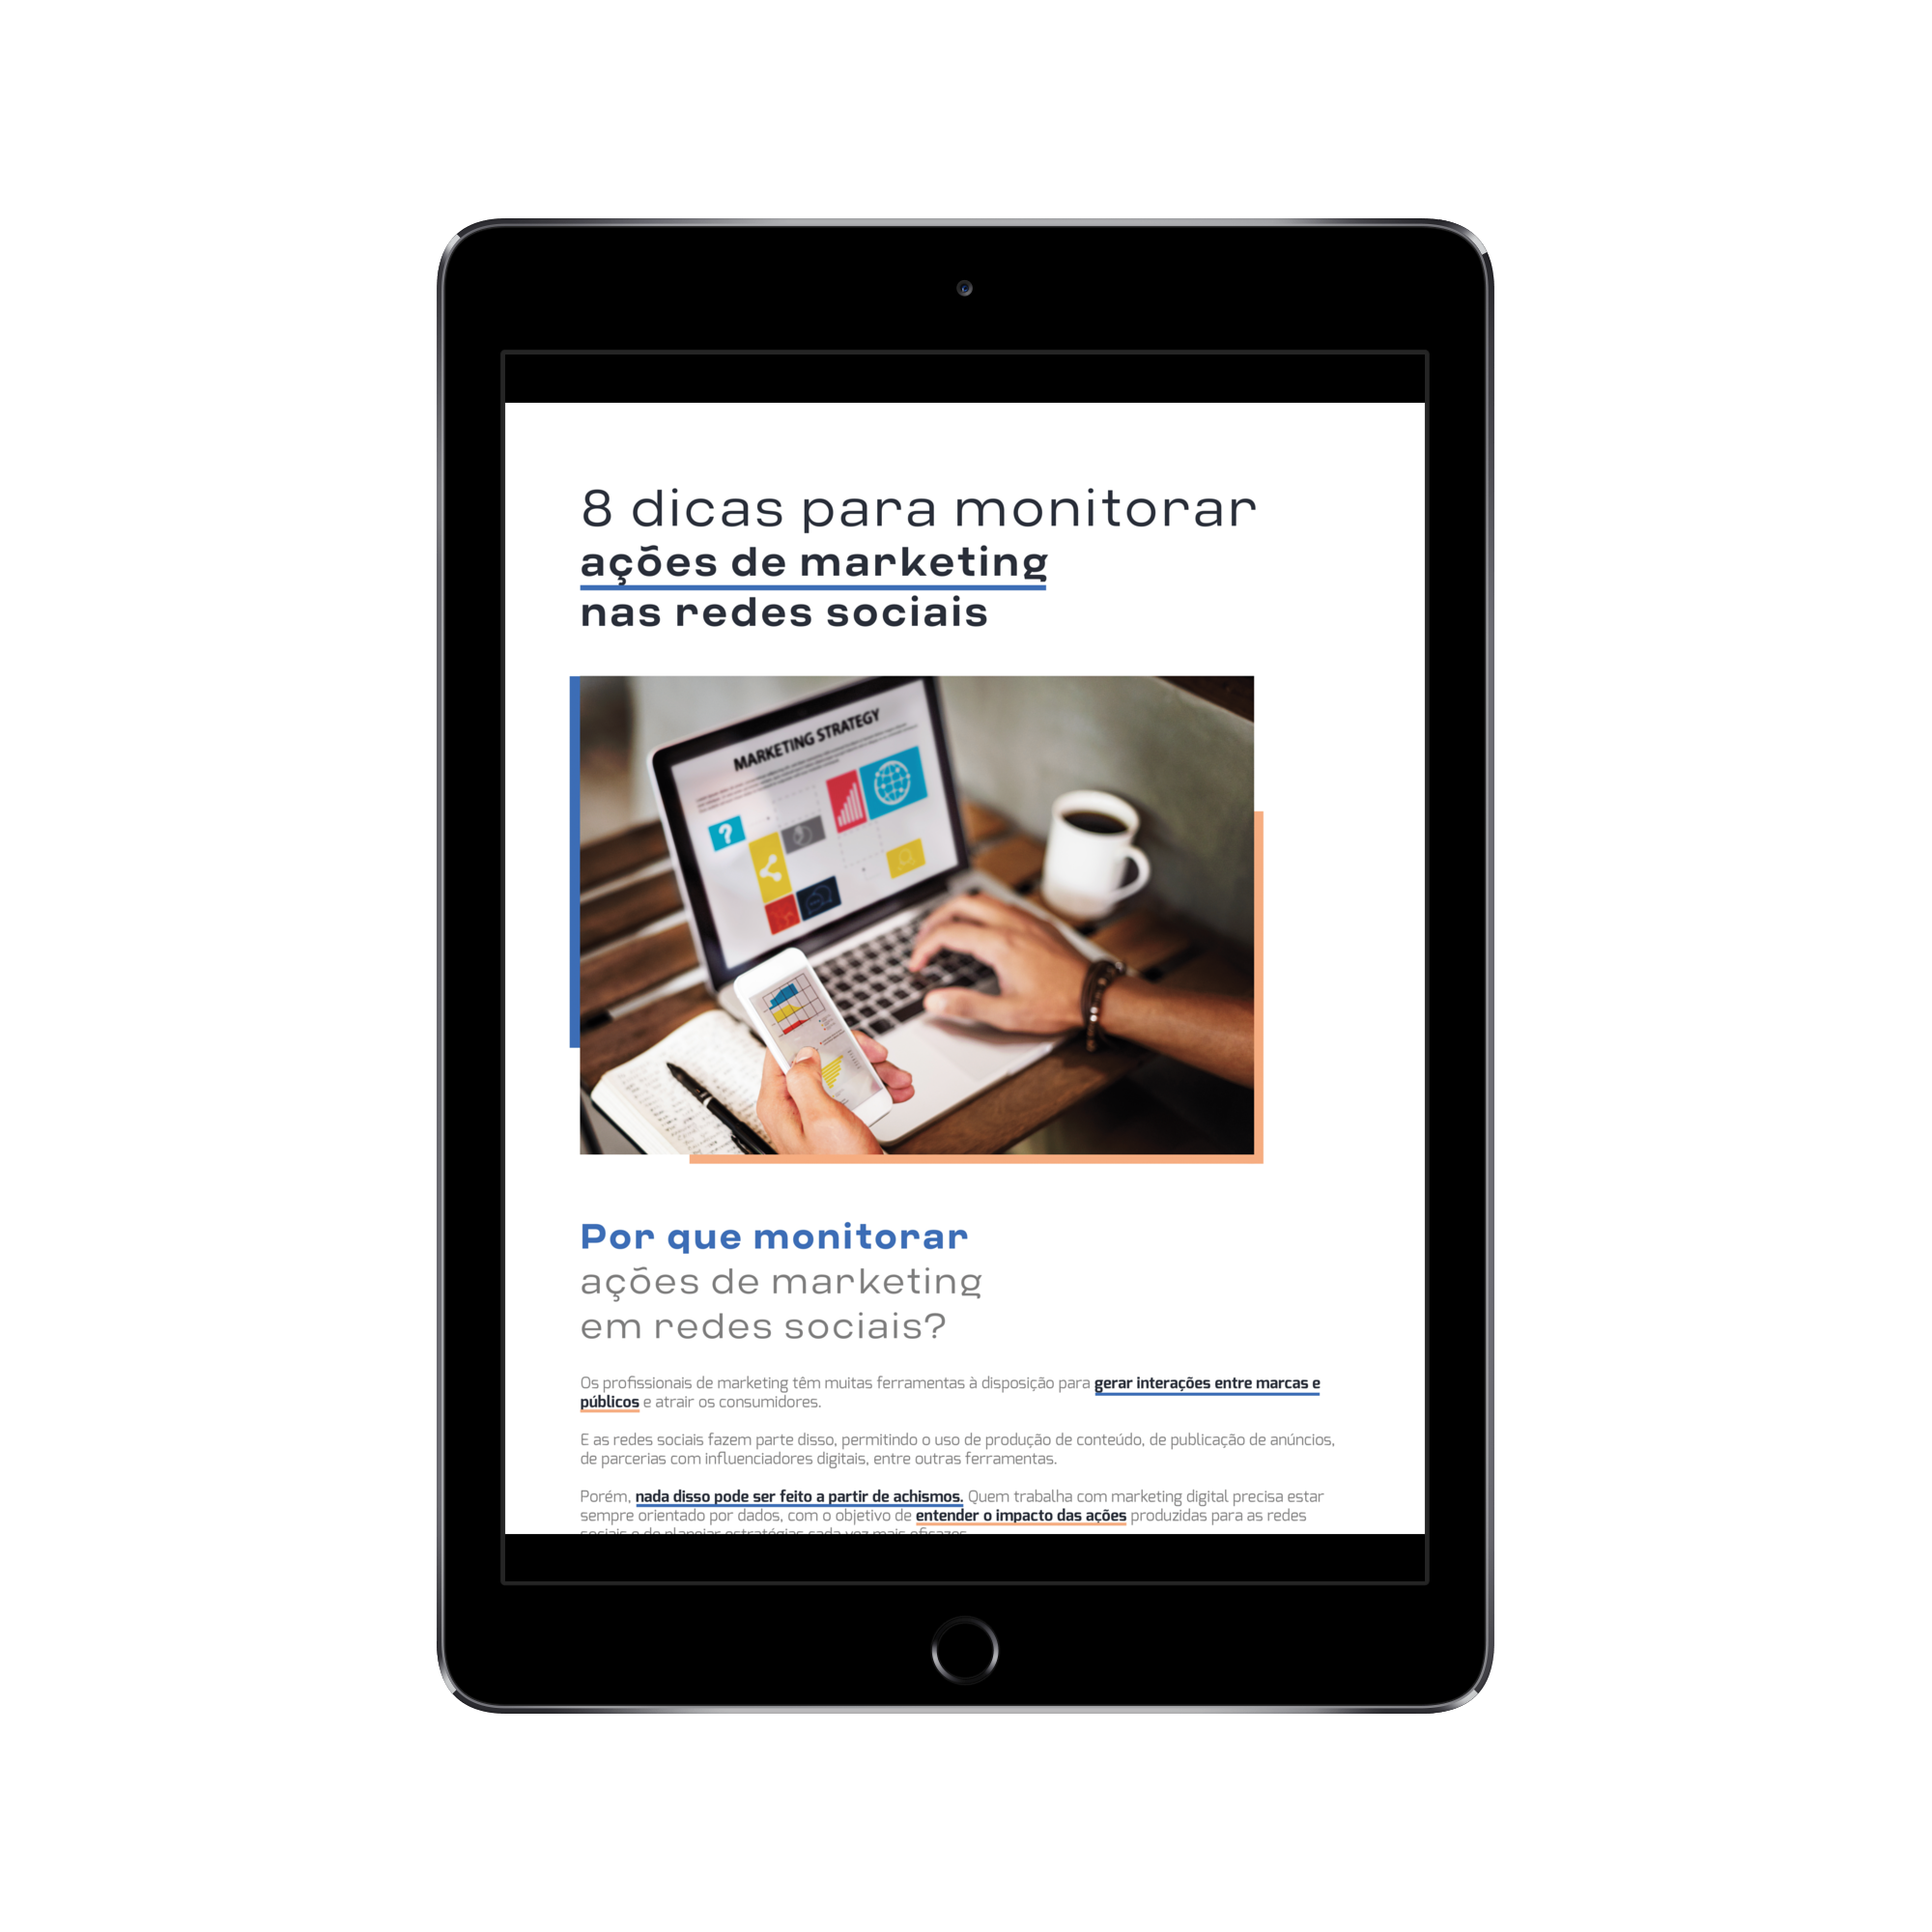 8_dicas_para_monitorar_acoes_de_marketing_nas_redes_sociais-1_ipadair2_spacegrey_portrait